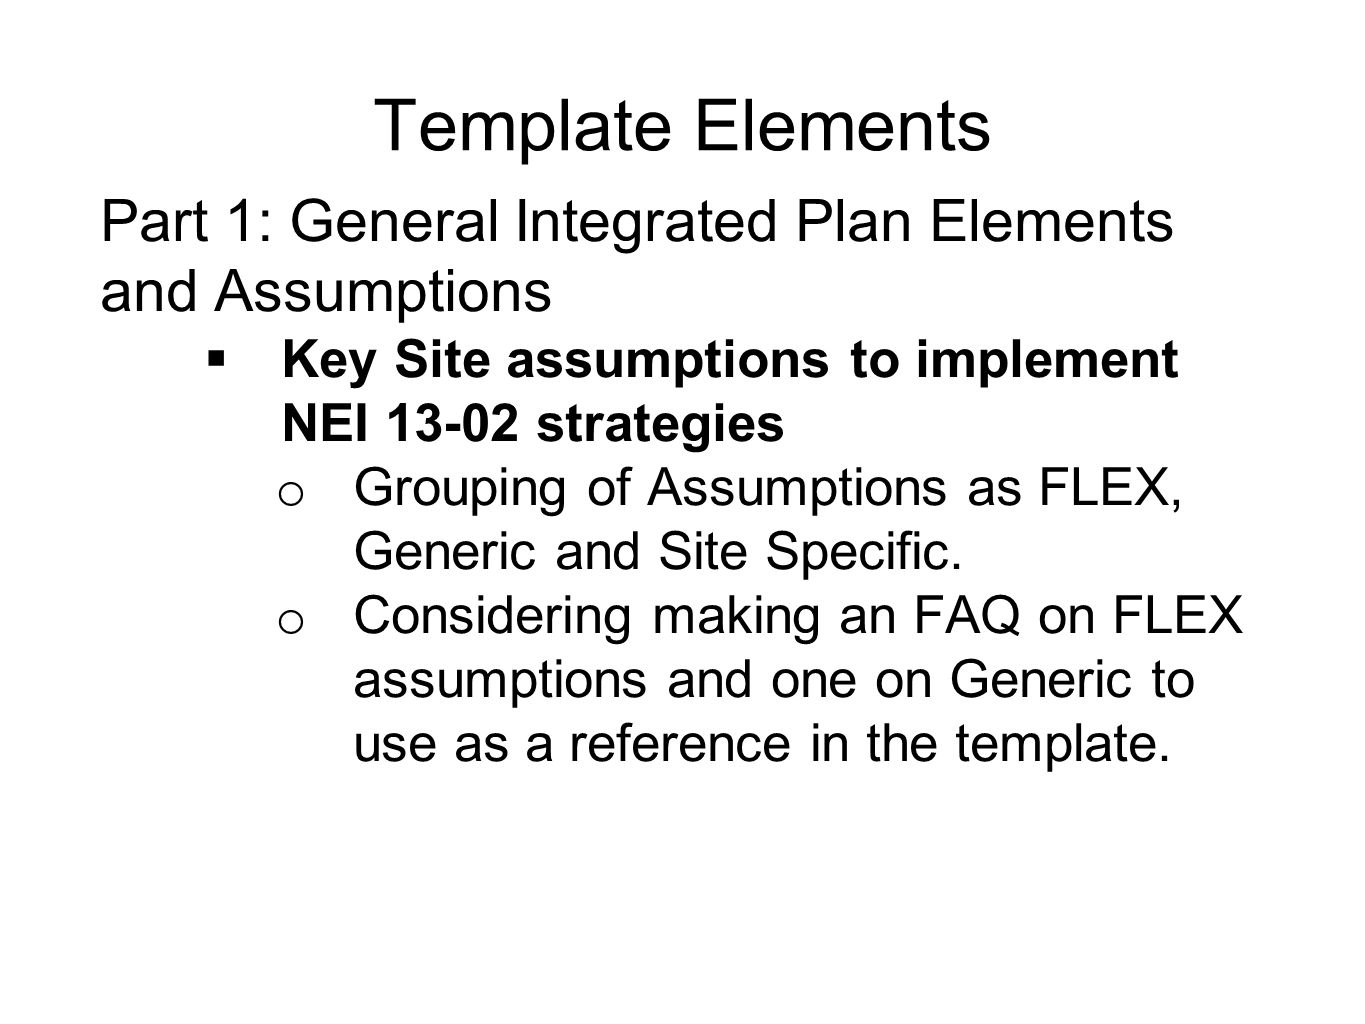 Template Elements Part 1: General Integrated Plan Elements and Assumptions. Key Site assumptions to implement NEI 13-02 strategies.